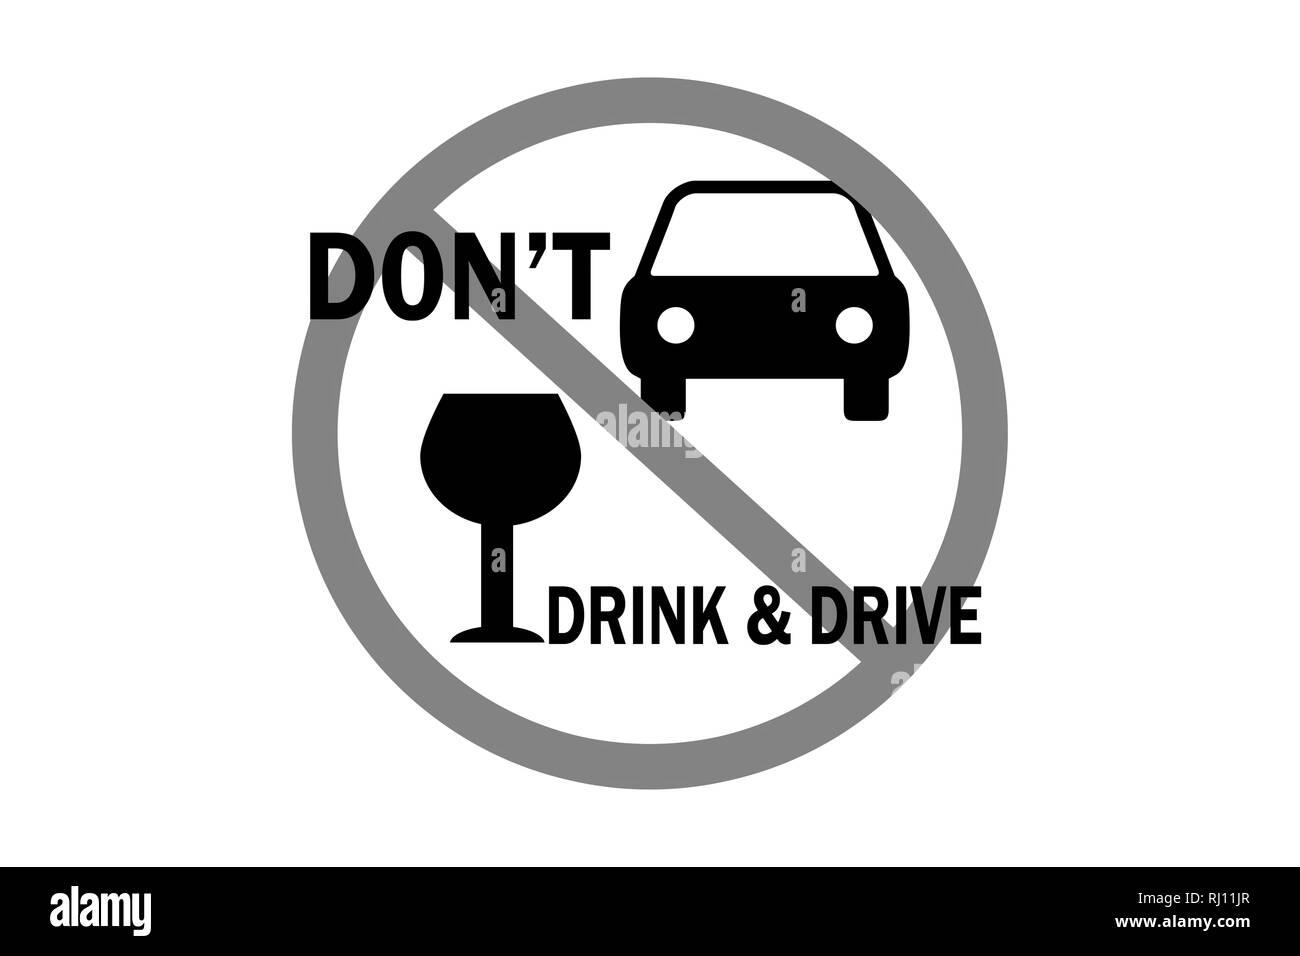 don't drink and drive text icon illustration isolated on white background - Stock Image